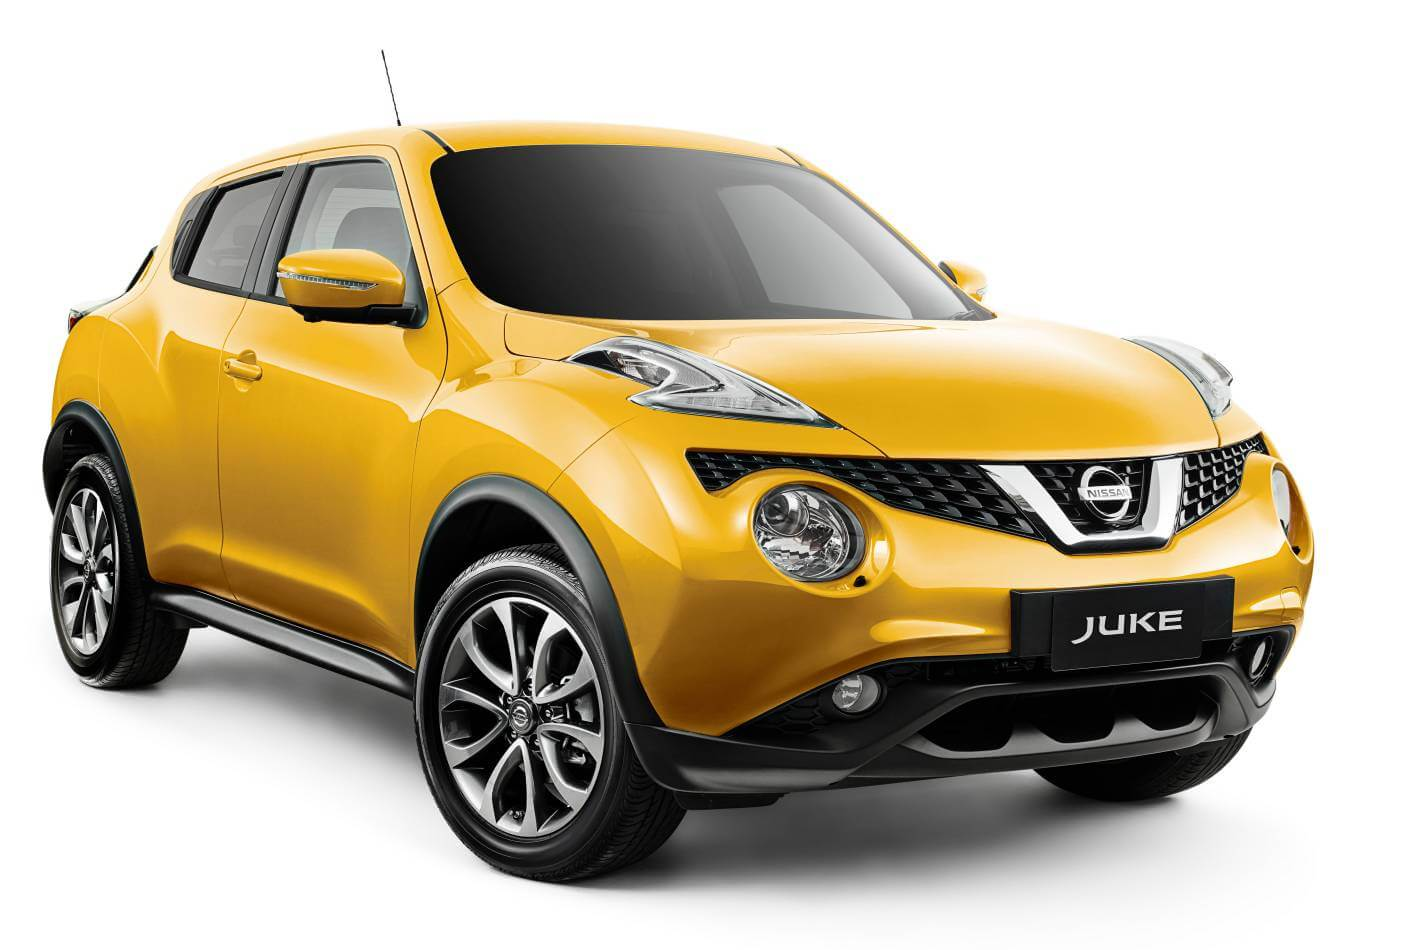 refreshed 2015 nissan juke pricing and specifications practical motoring. Black Bedroom Furniture Sets. Home Design Ideas